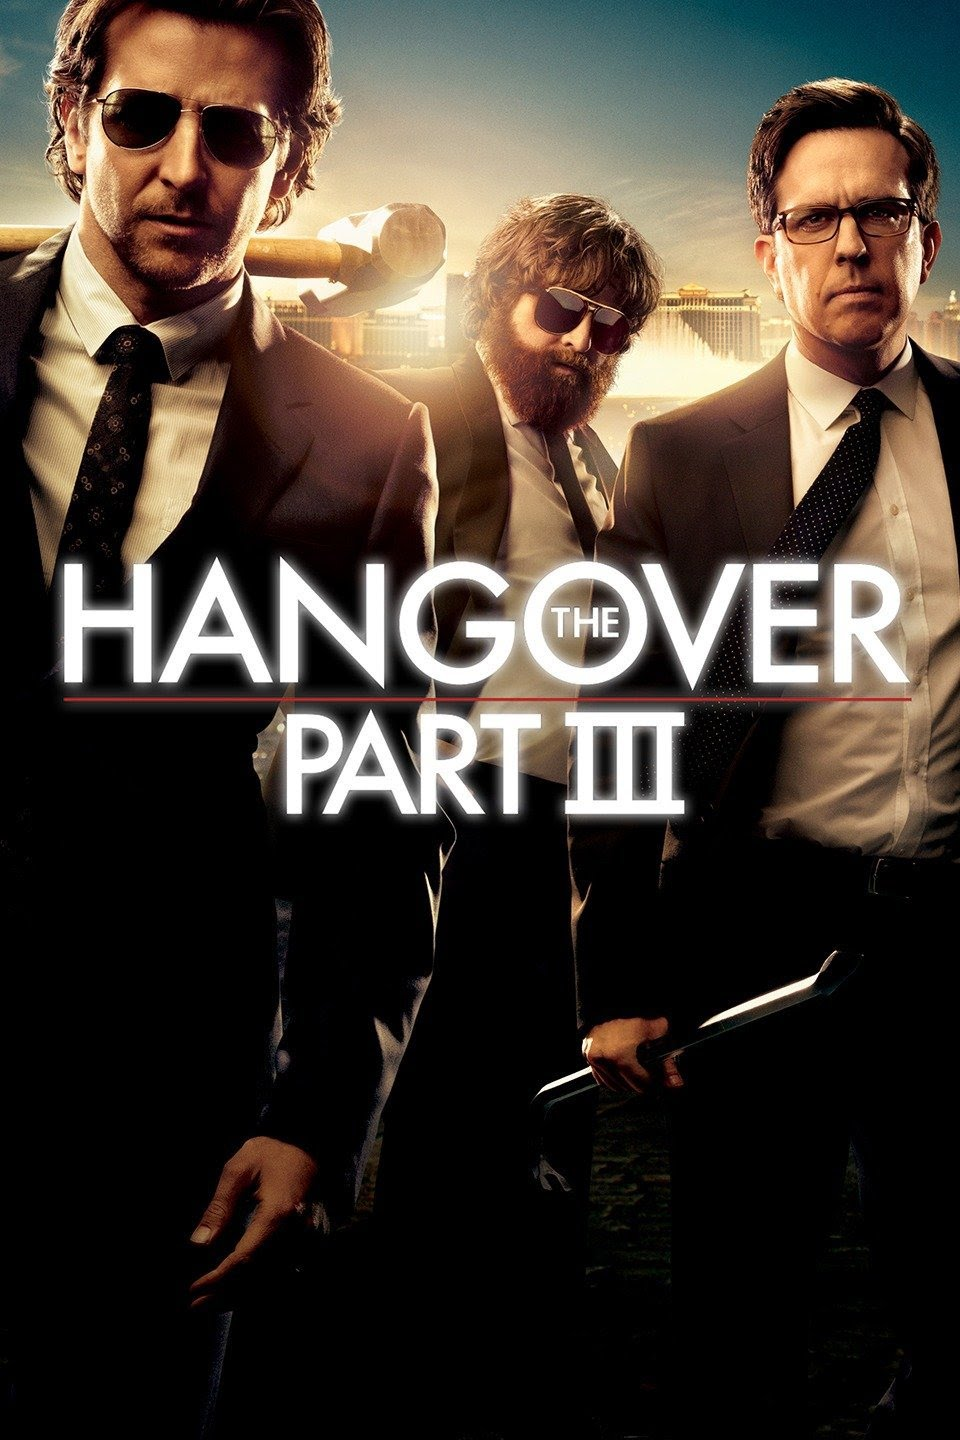 The Hangover: Part III (2013)